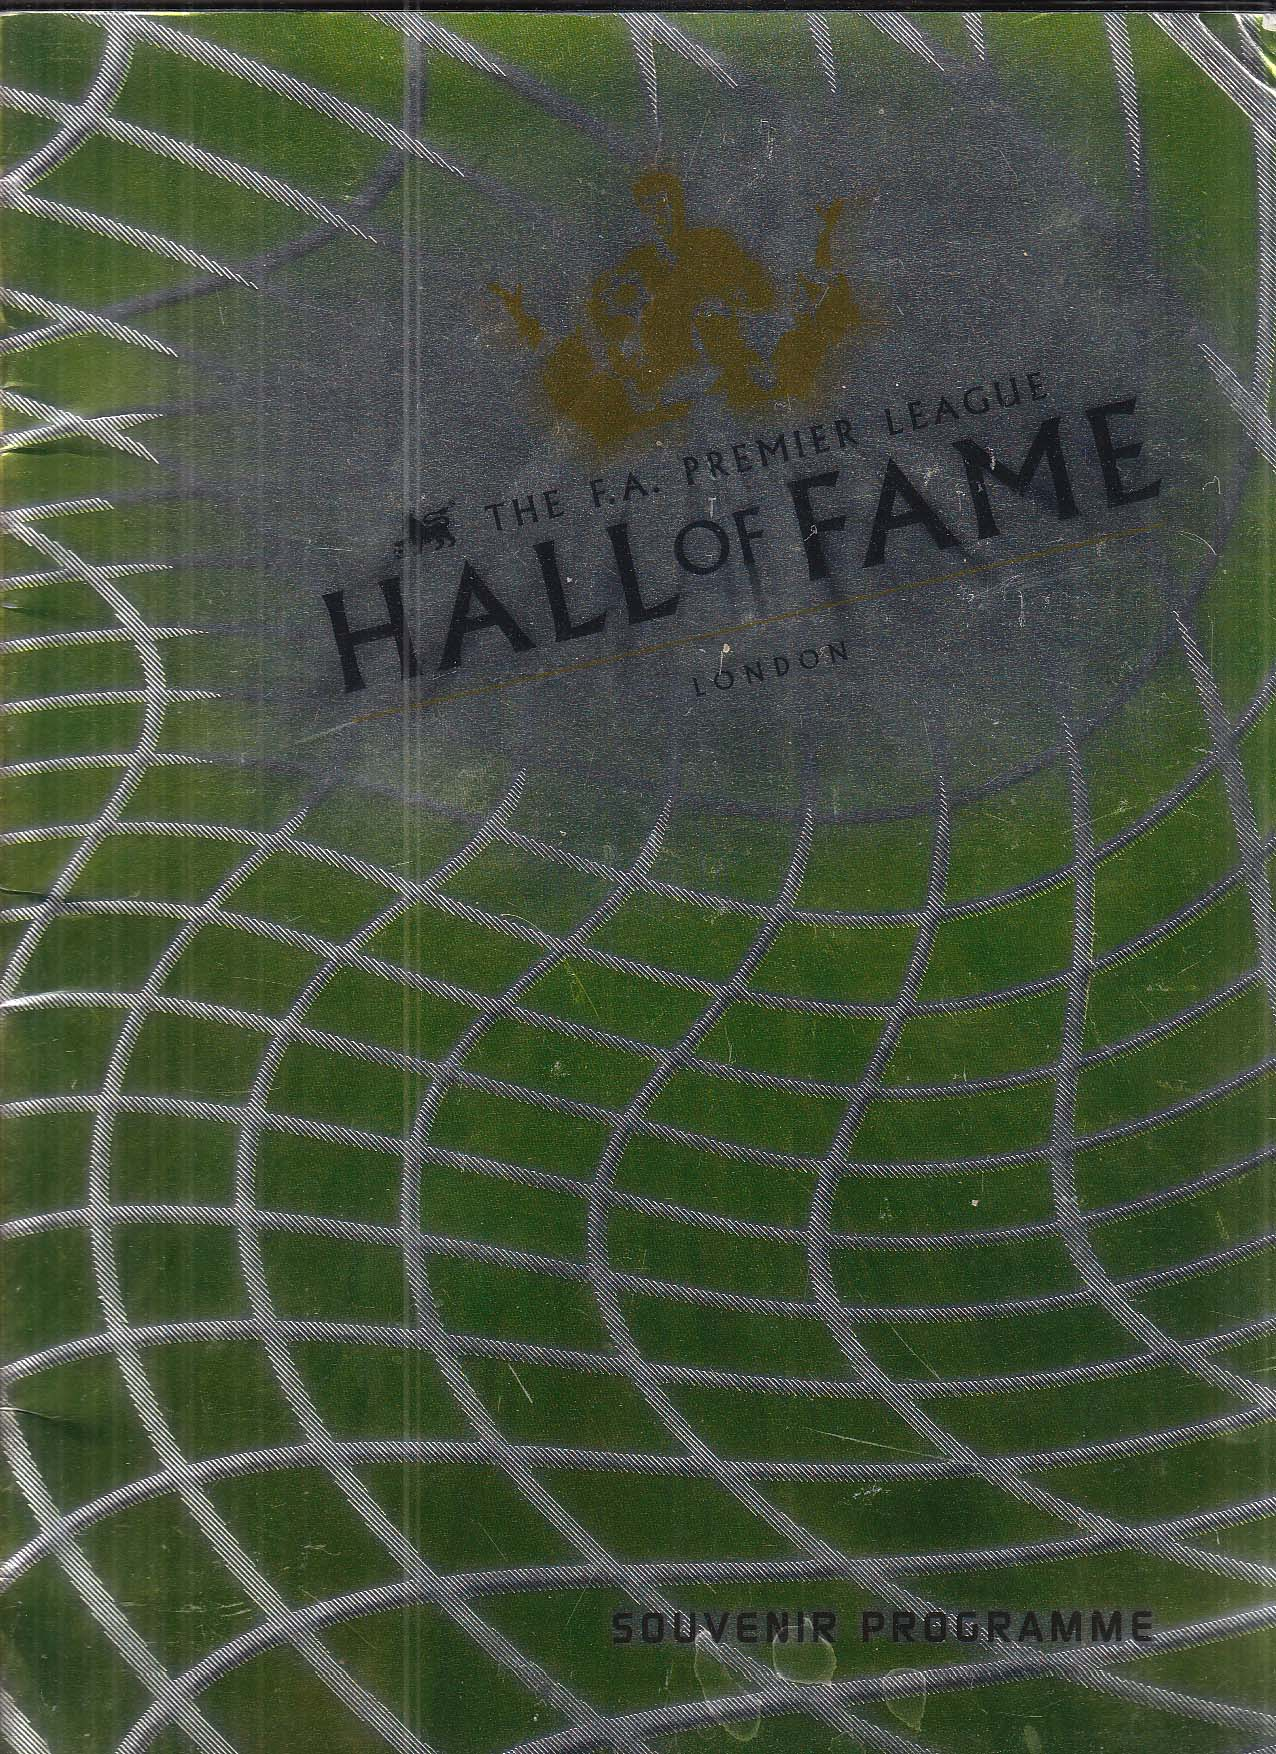 FA Premier League Hall of Fame London souvenir program 1999